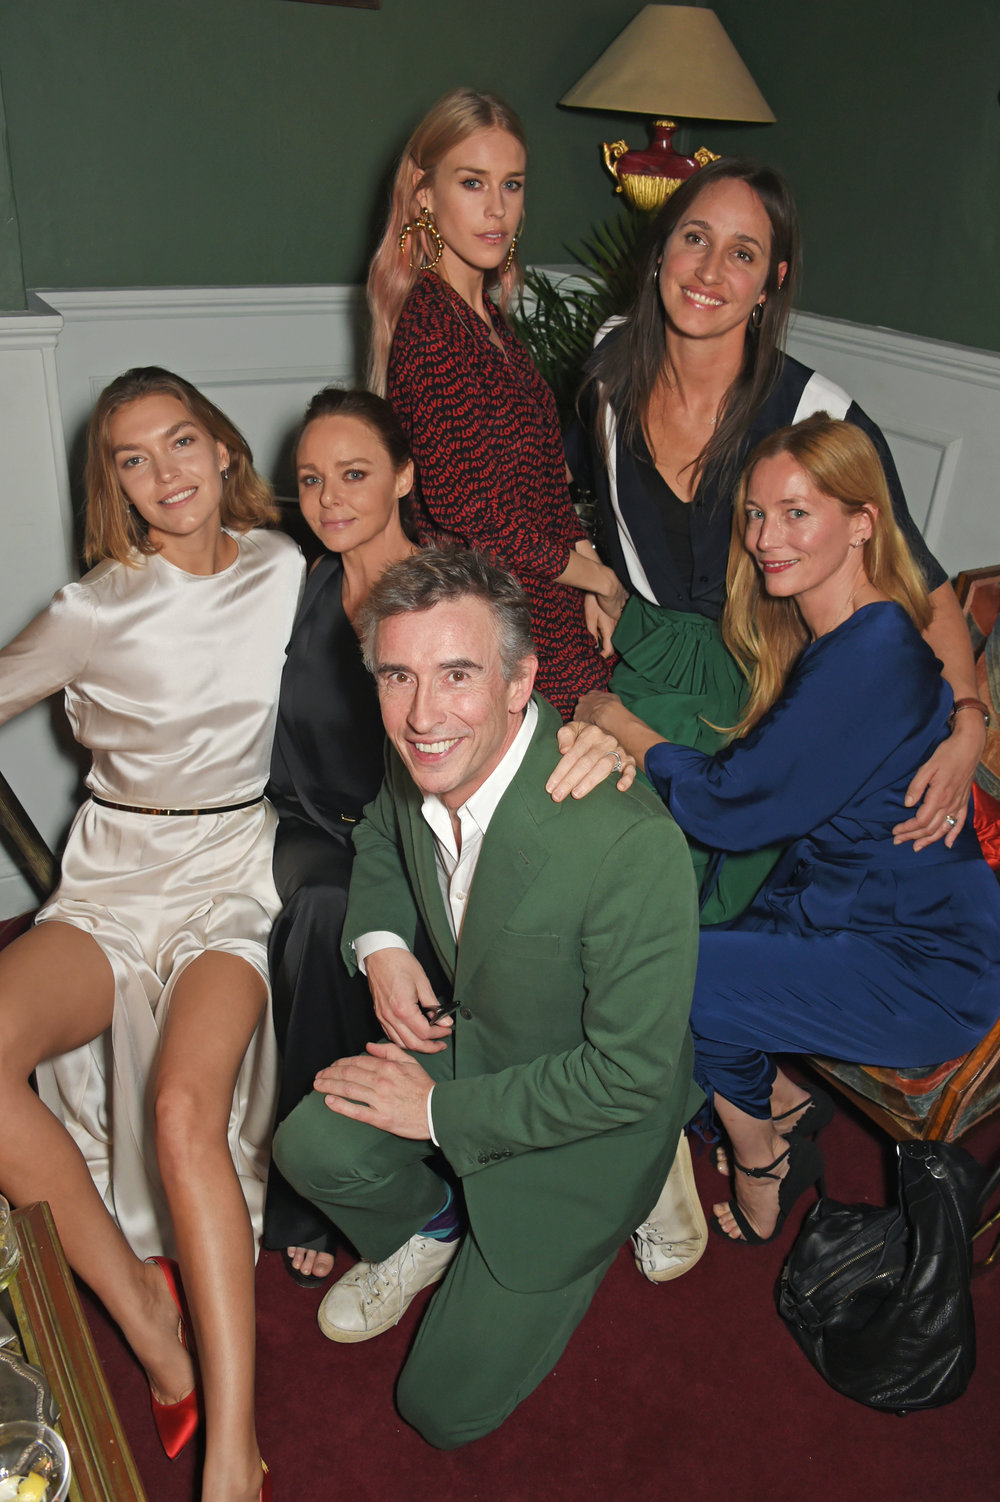 DMB-STELLA_MCCARTNEY_NET-A-PORTER_PARTY_COLLECTION035.JPG